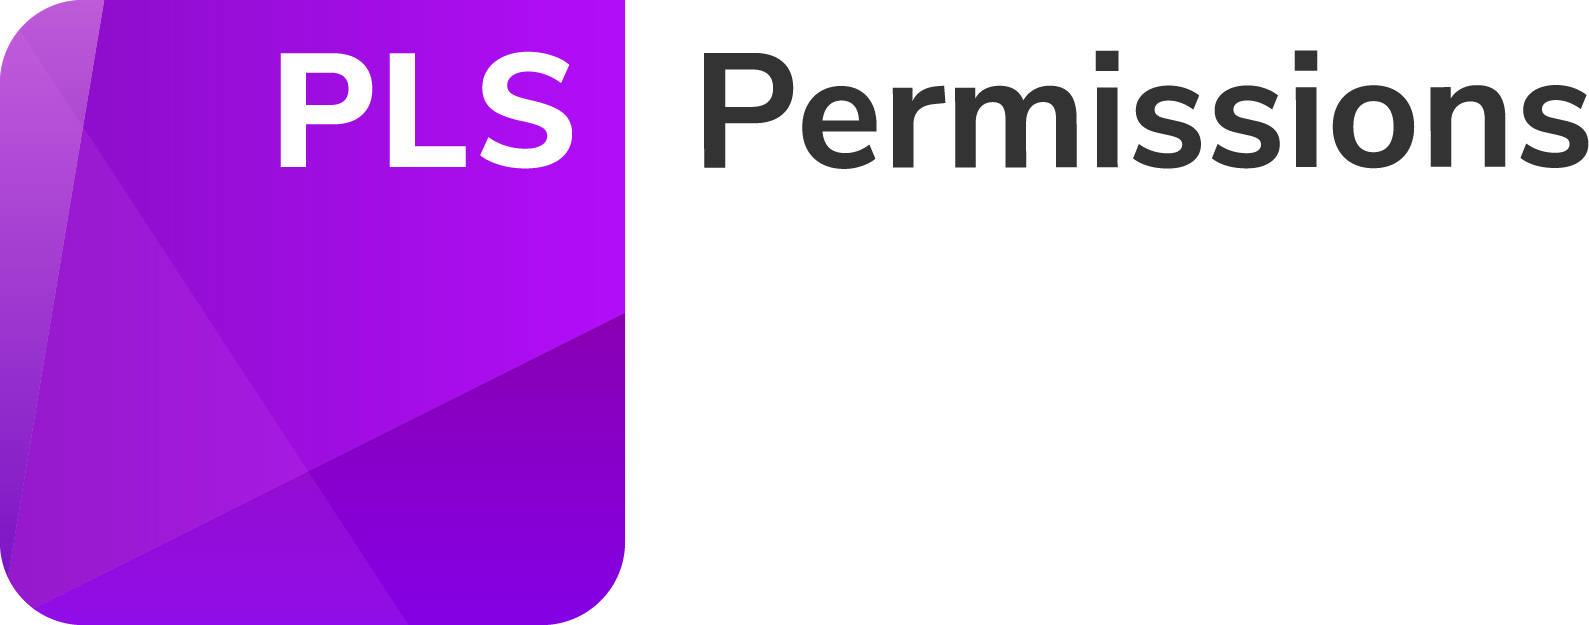 pls permissions logo full rgb